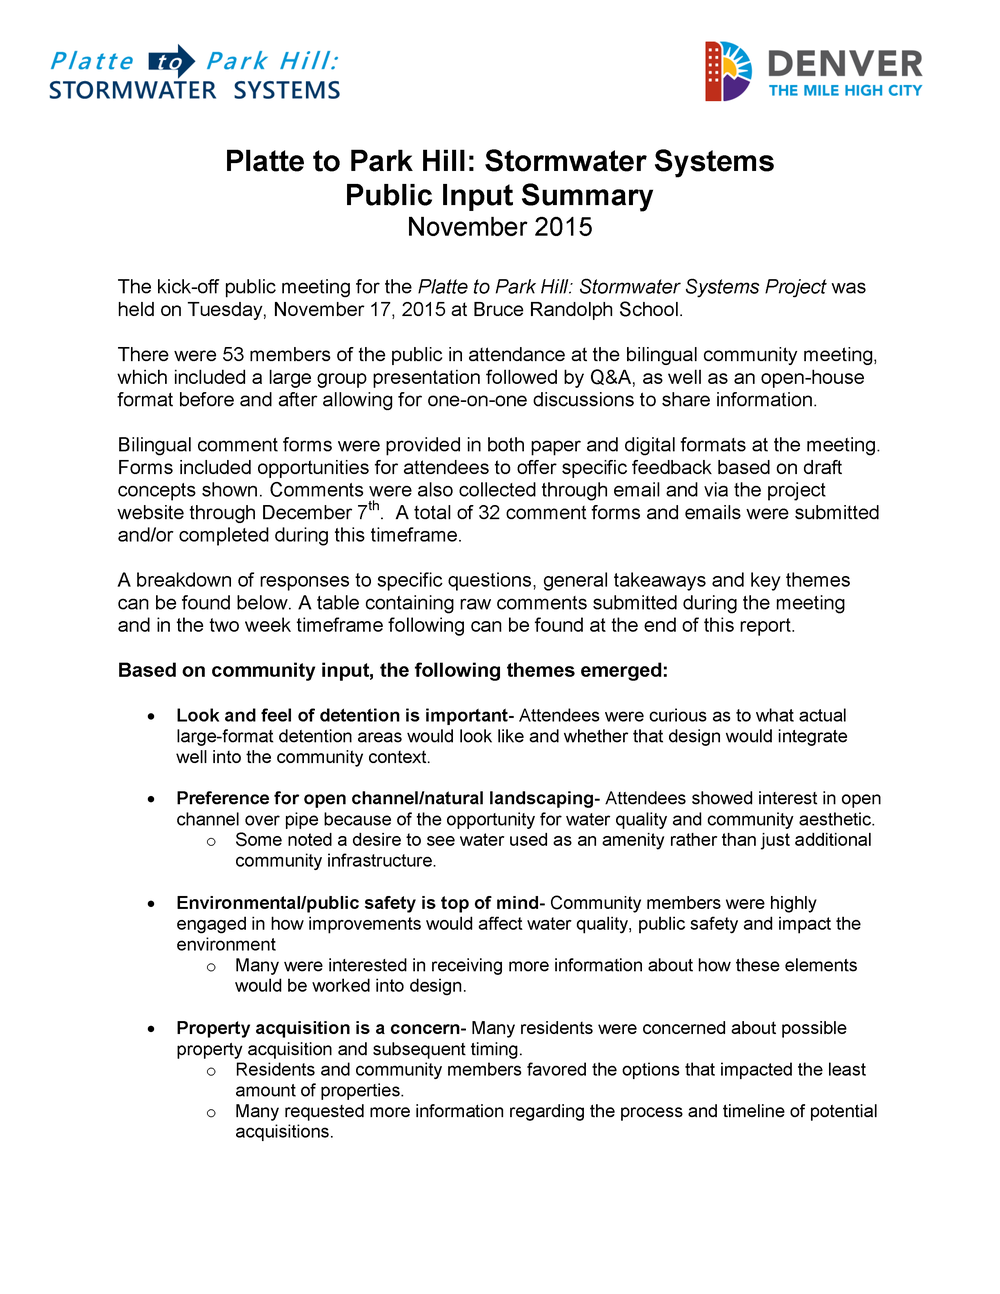 Stormwater Systems Public Input